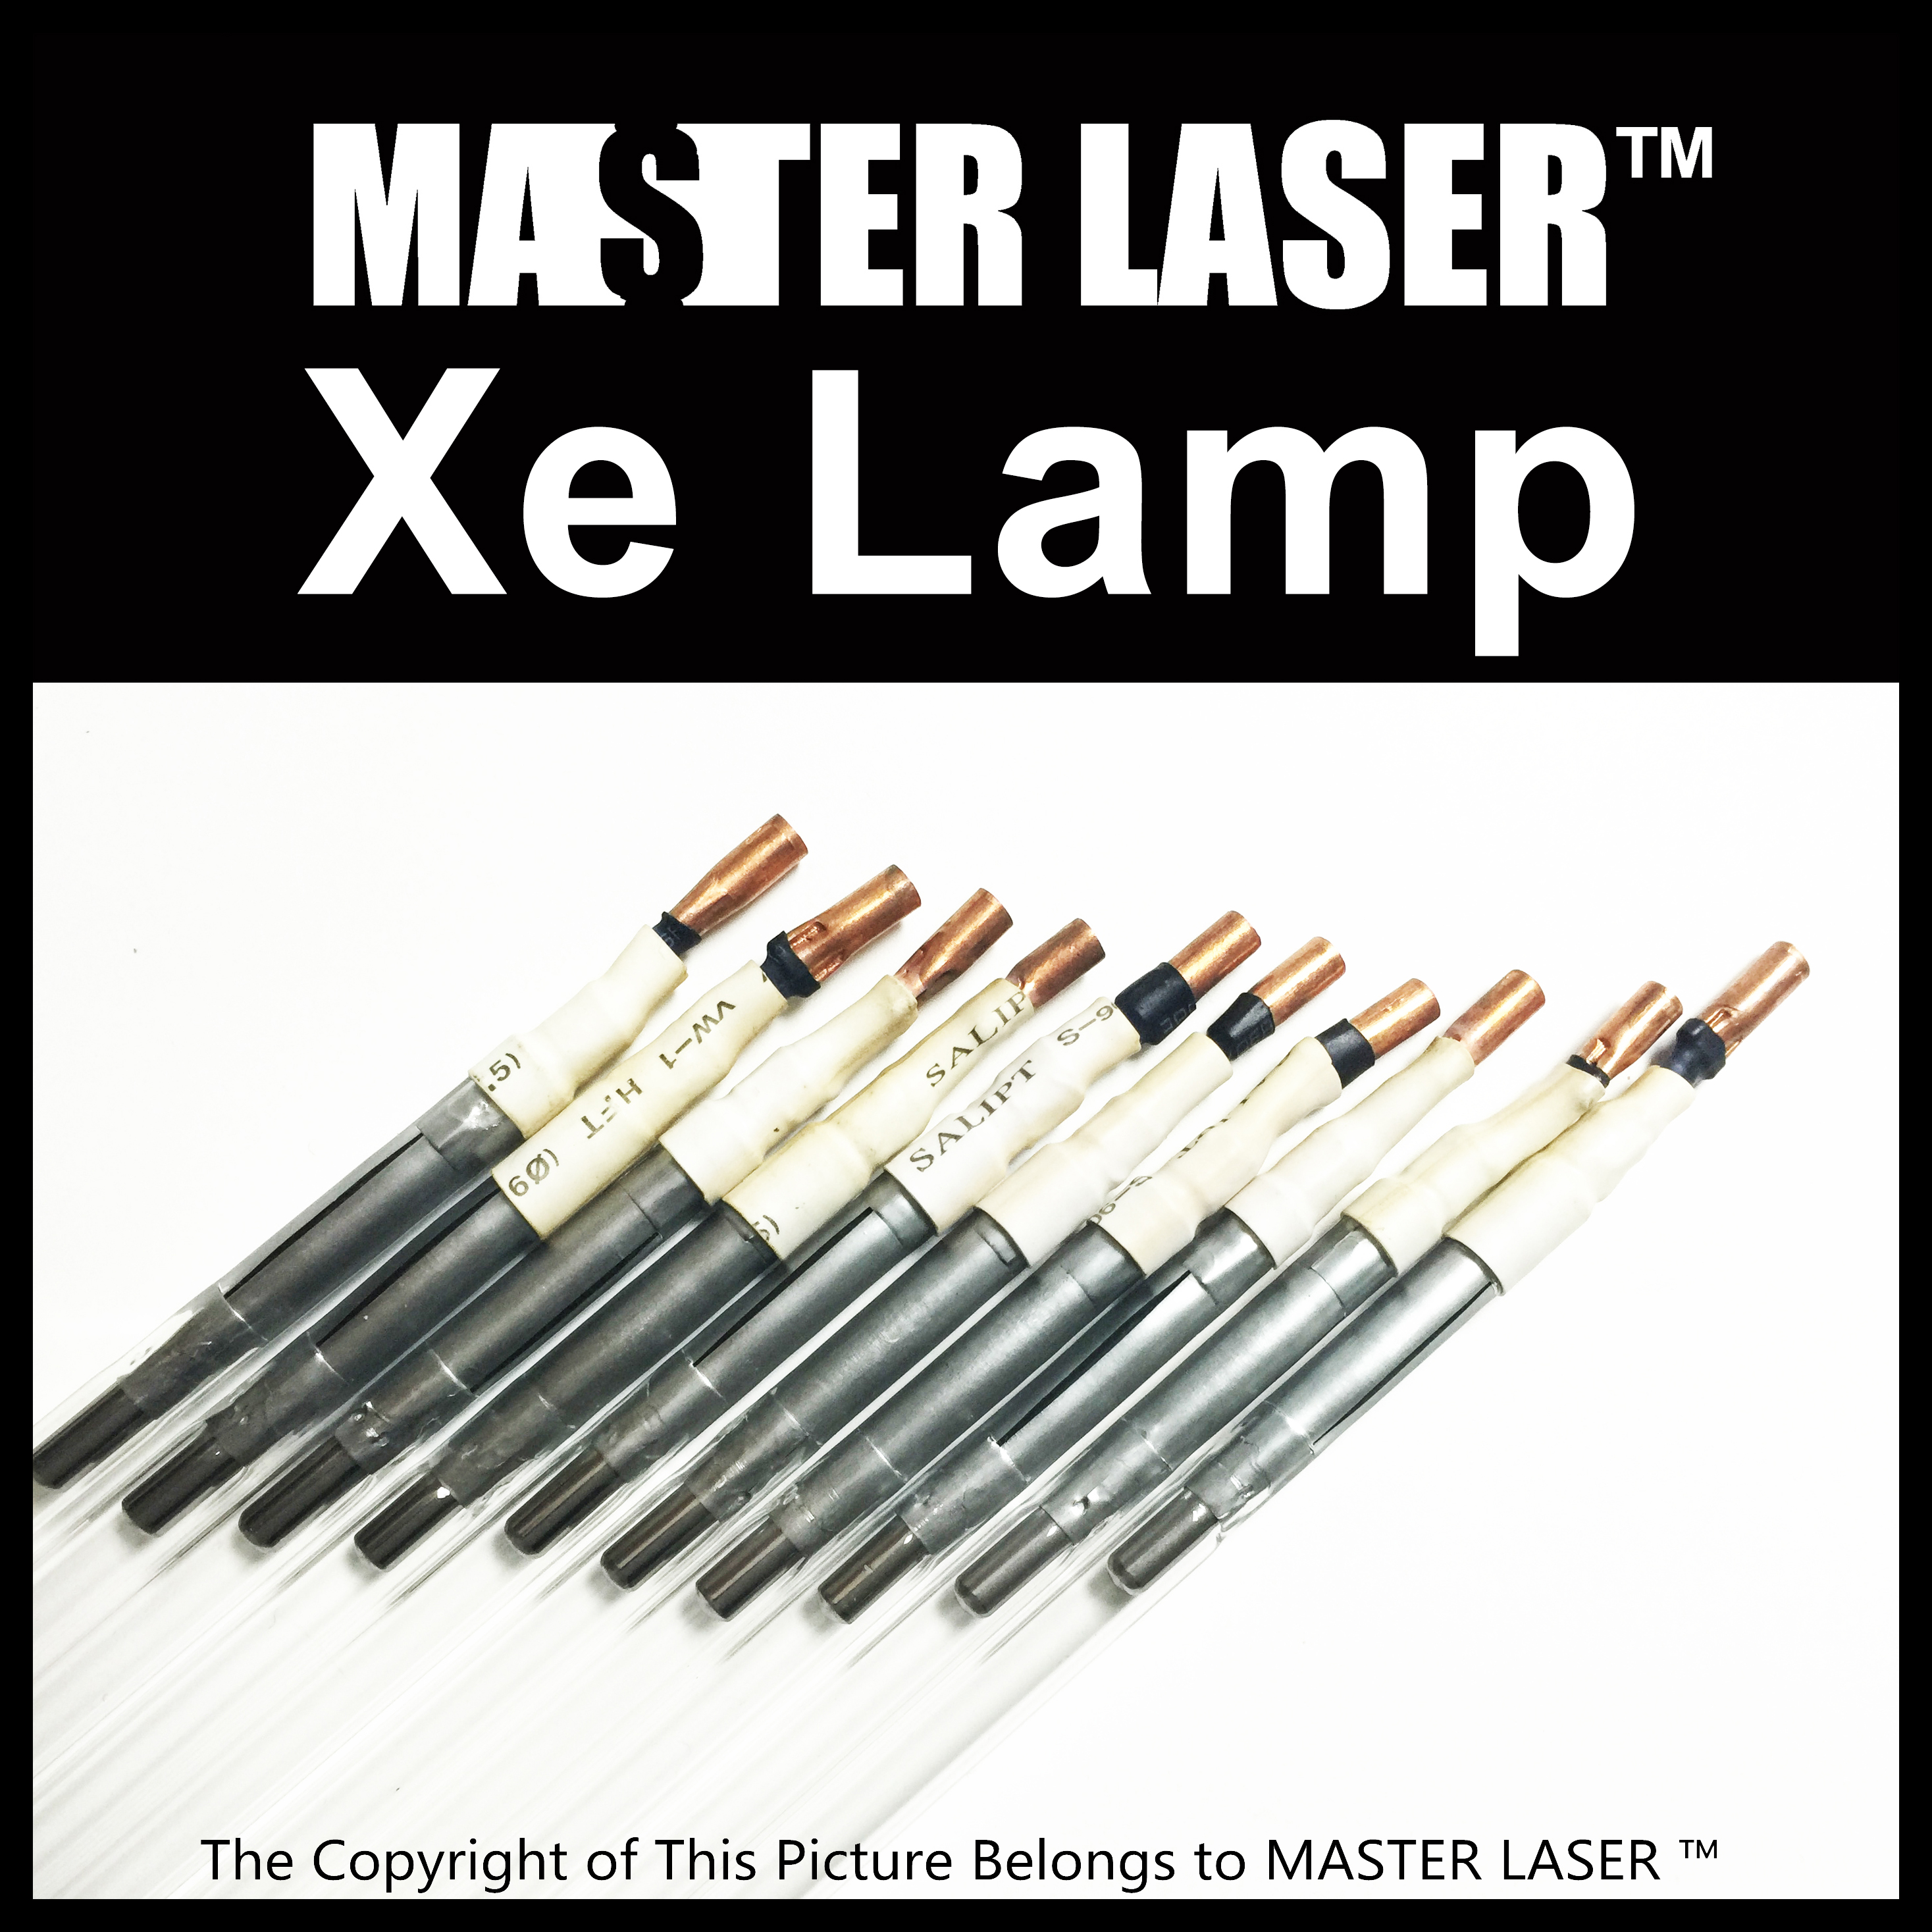 Best Quality 1064nm YAG laser machine Xenon Lamp  Xe Lamp free shipping 1064nm laser protective glasses for workplace of nd yag laser marking and cutting machine supreme quality